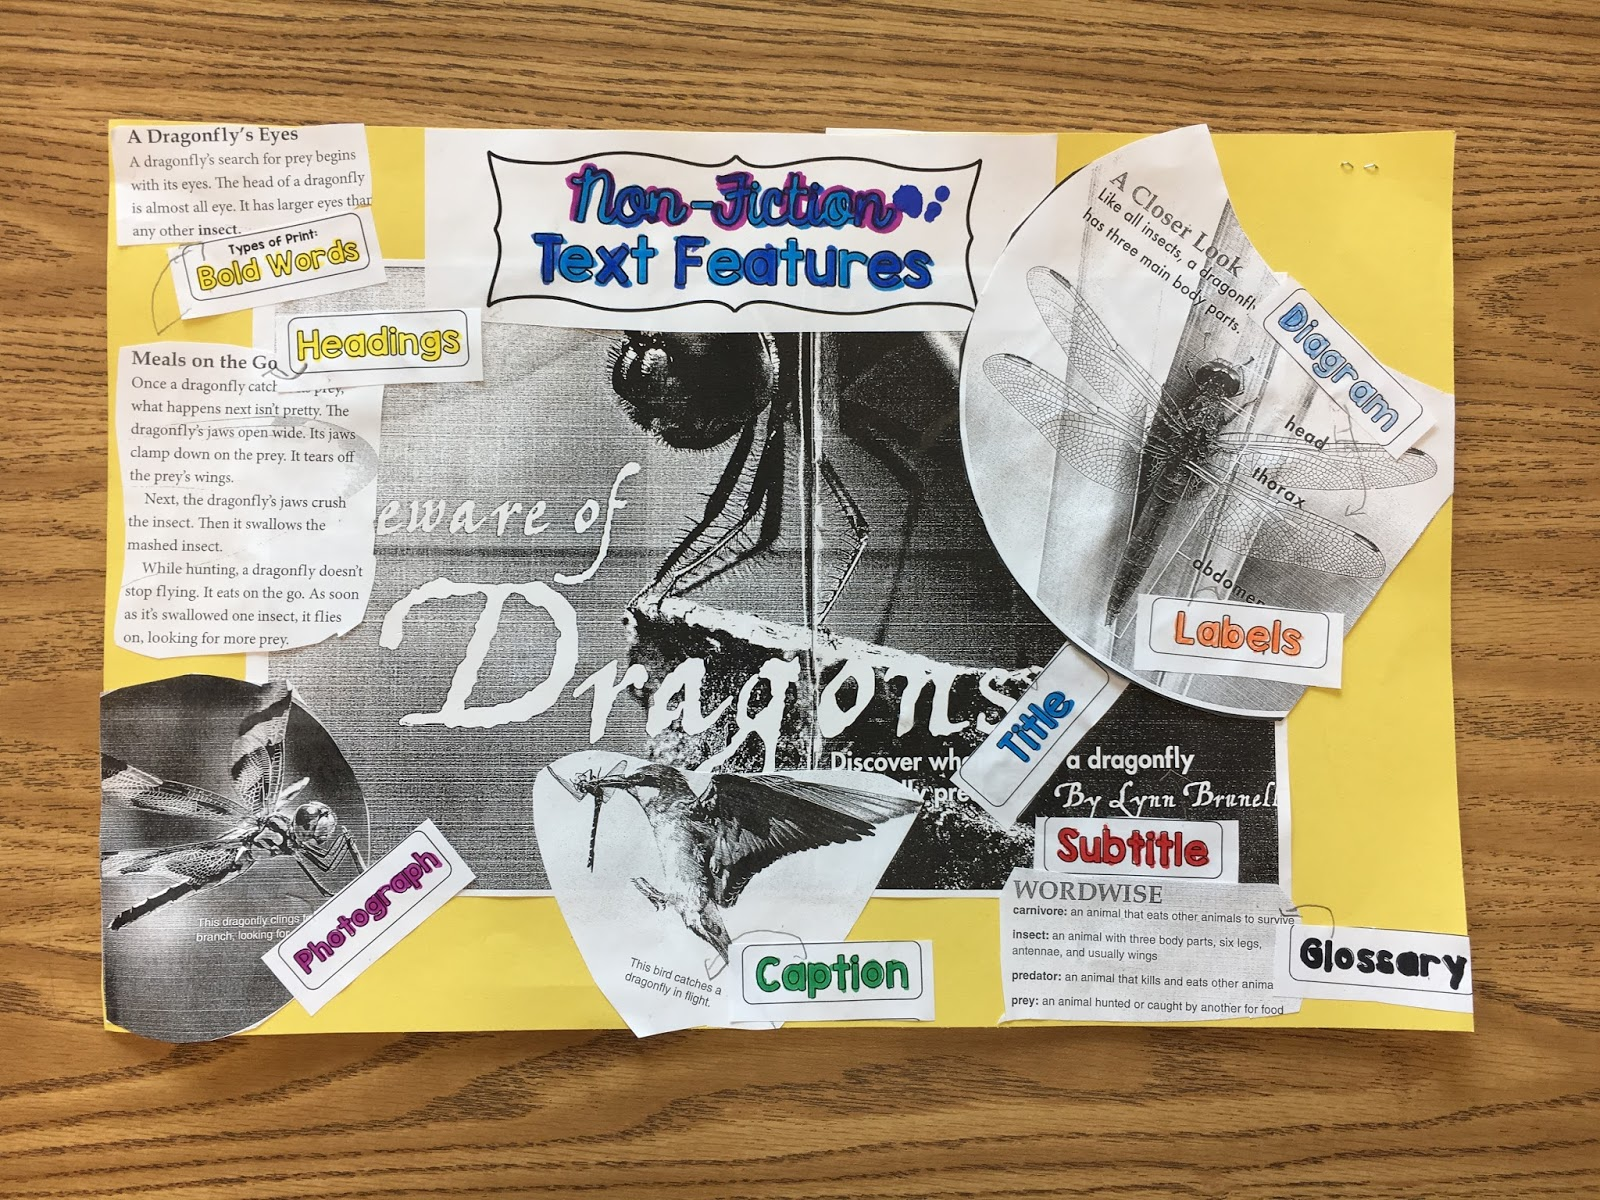 Figurative Language Text Features And A Celebrity Visit